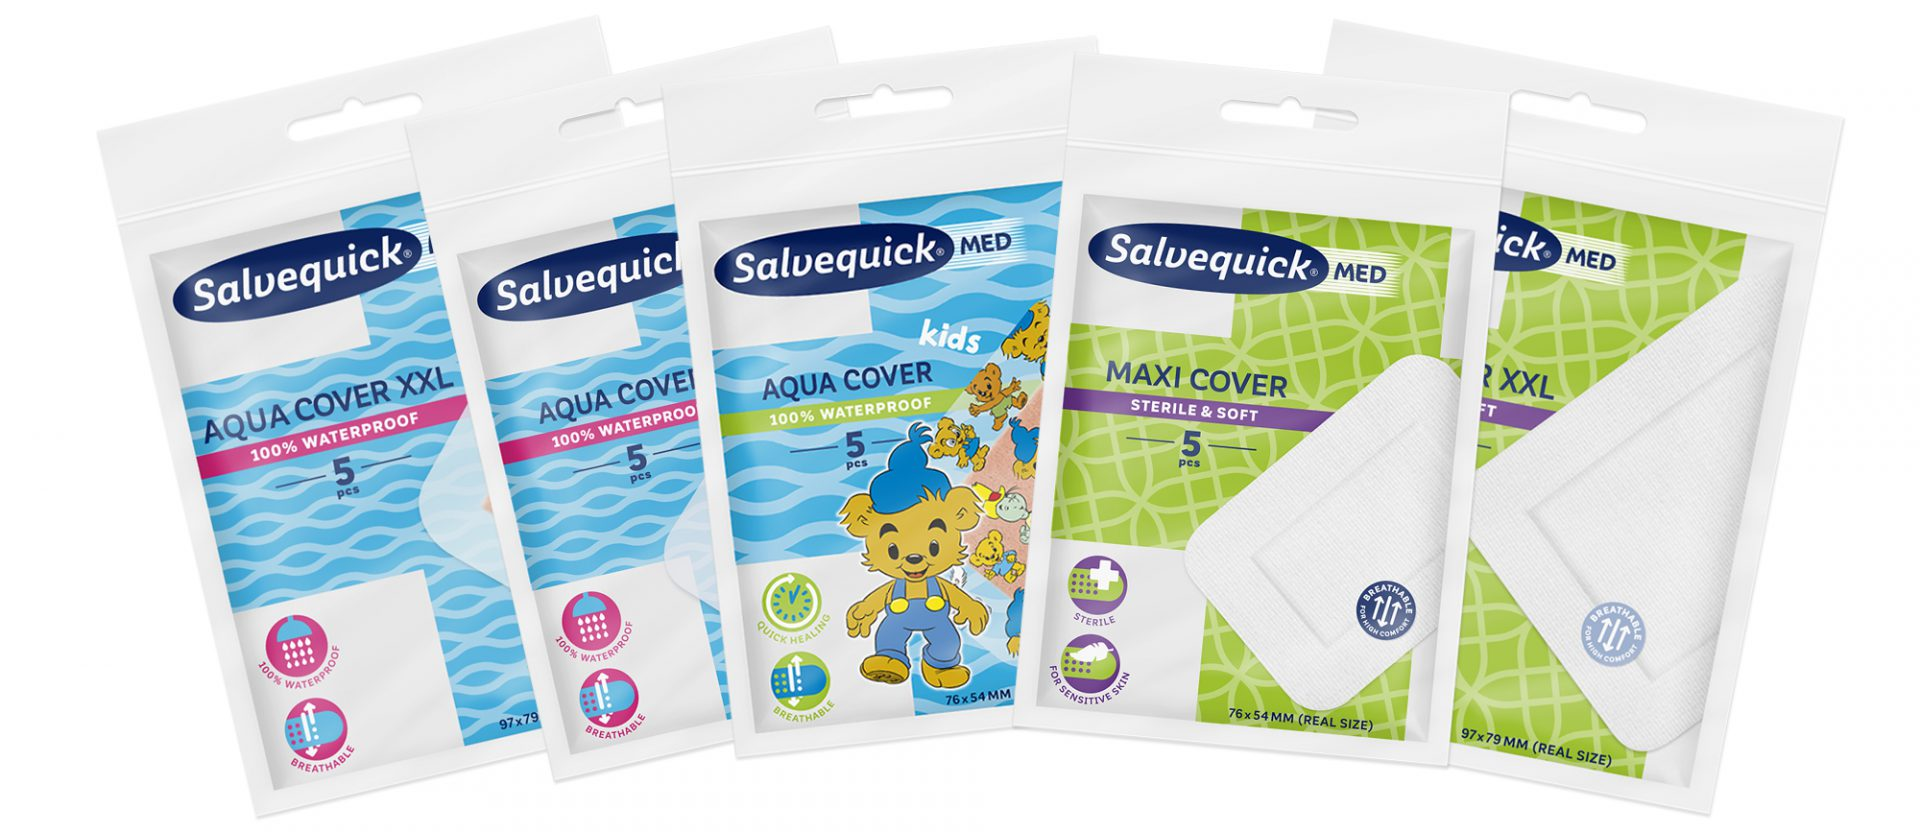 Plaster for larger wounds - Salvequick Cover